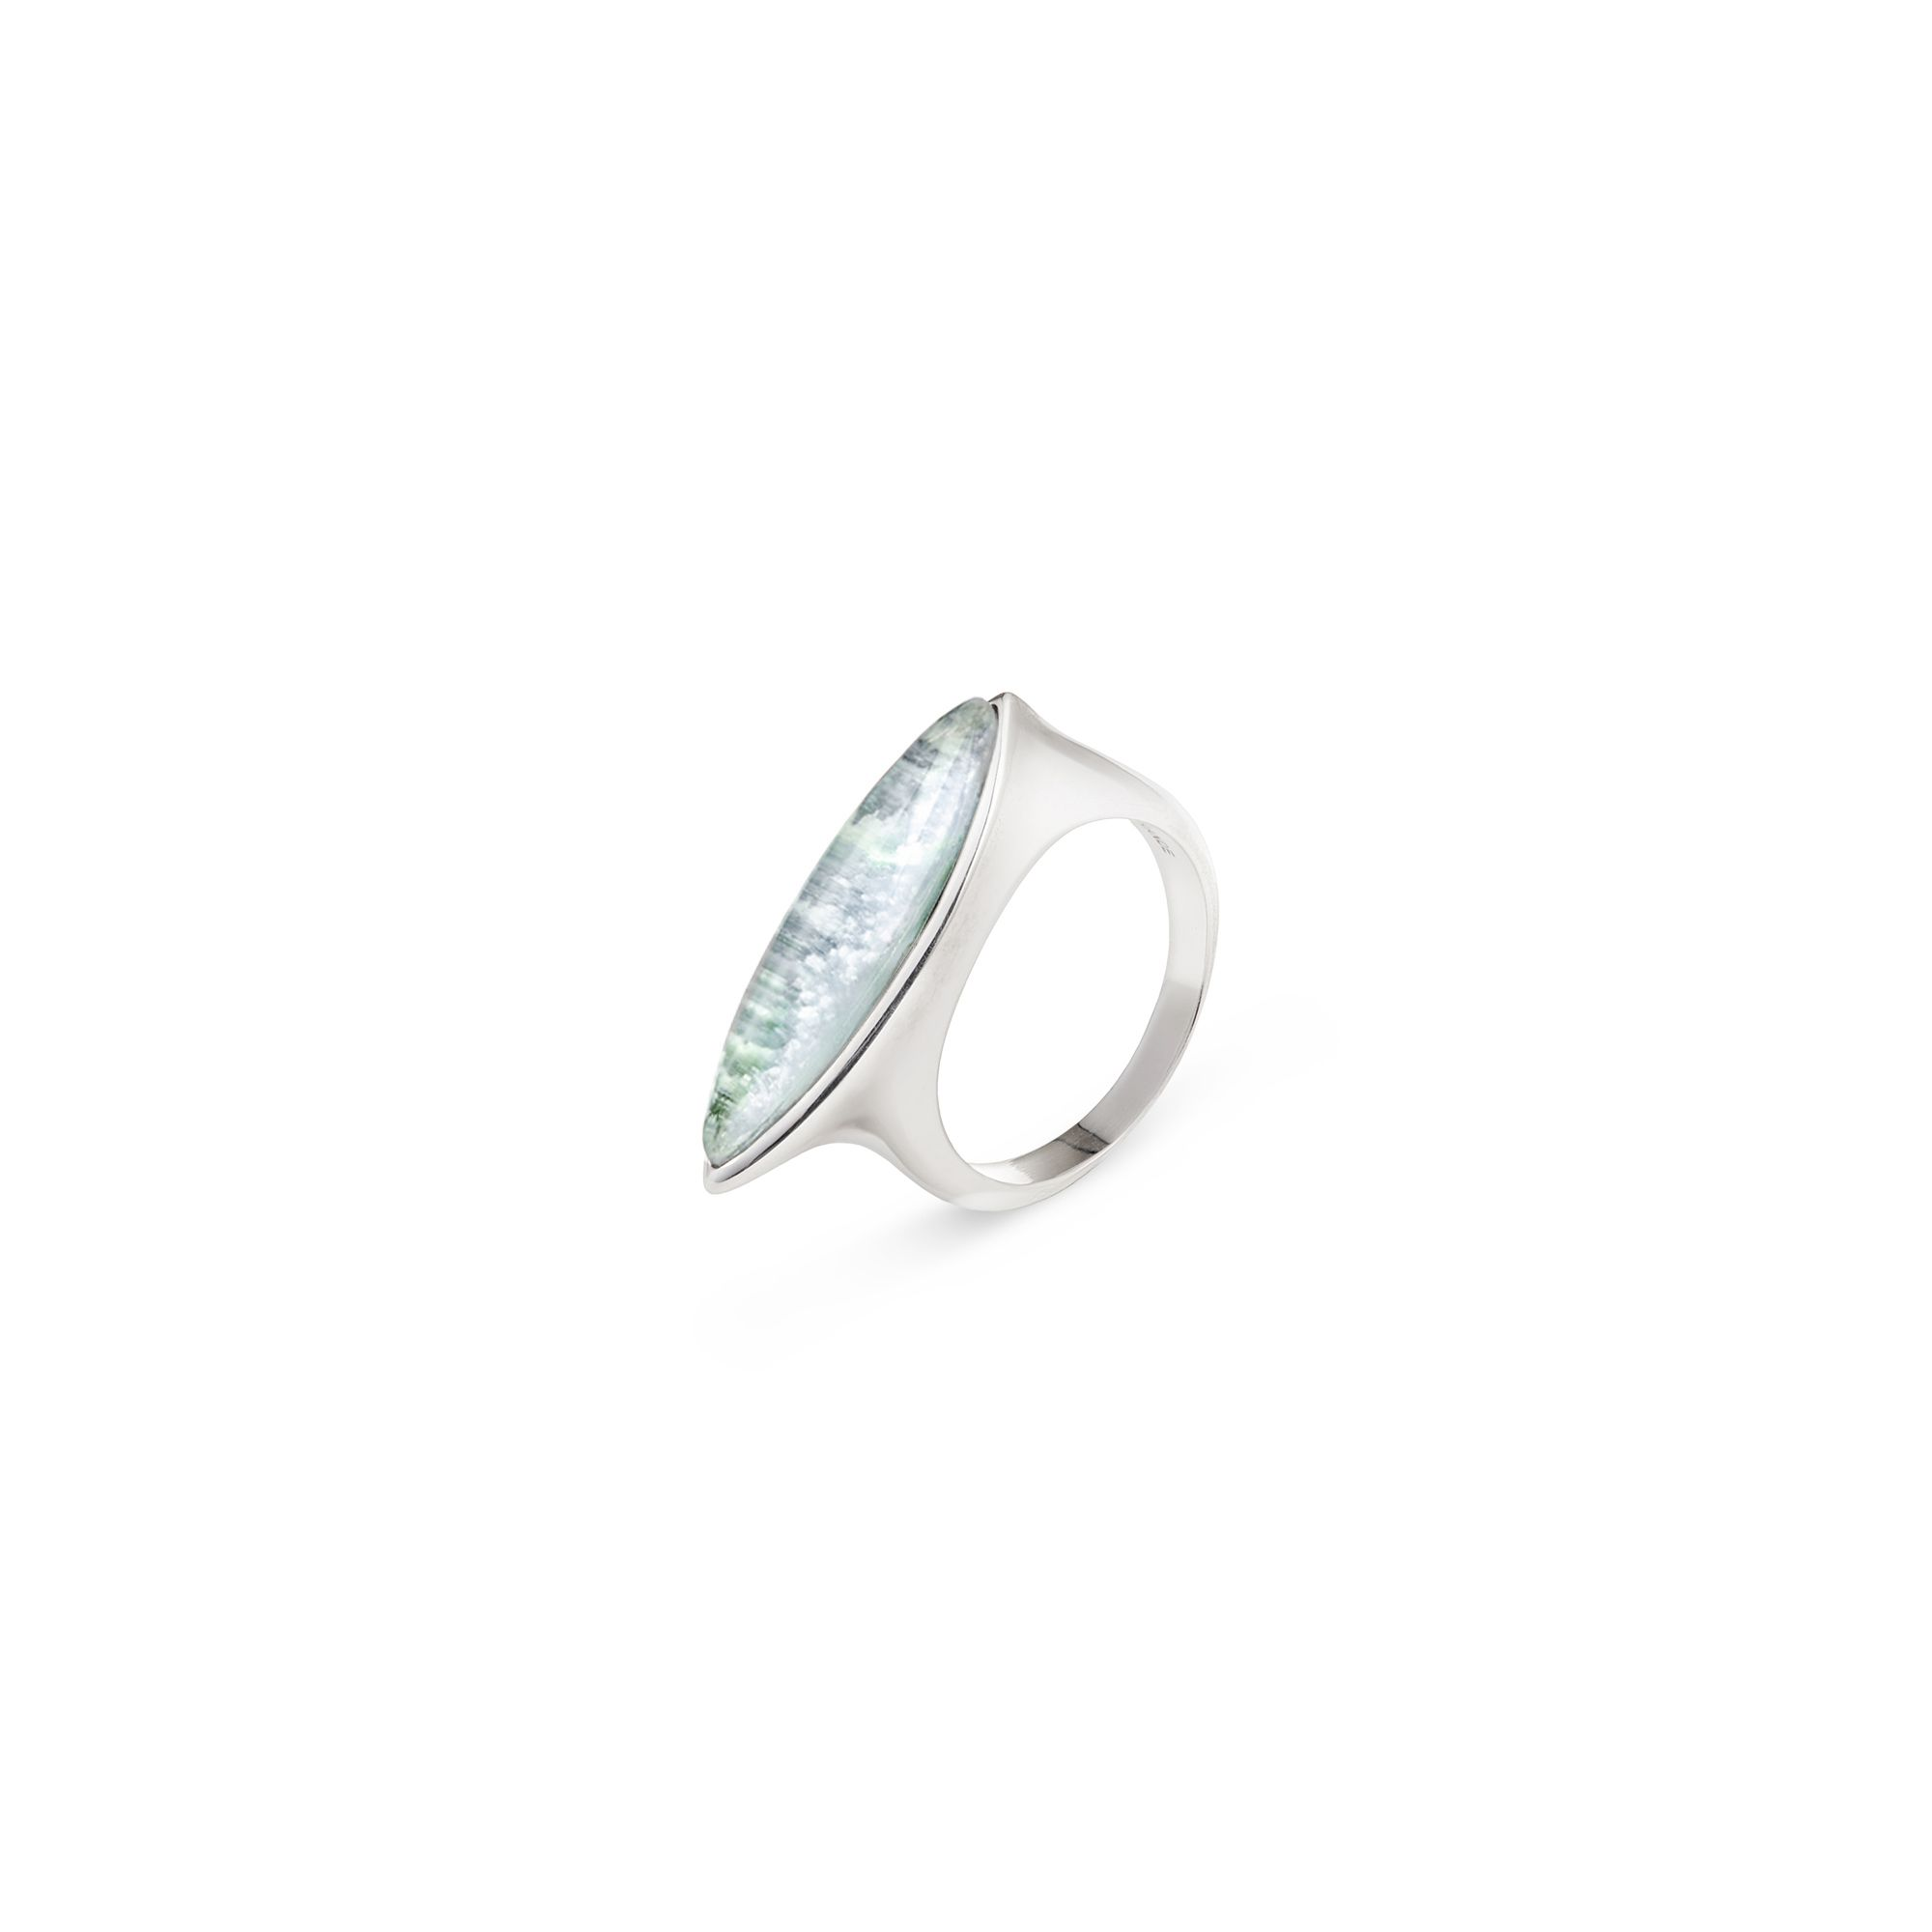 'Navetta' ring with aquamarine Silver ring with 'doublet' stone